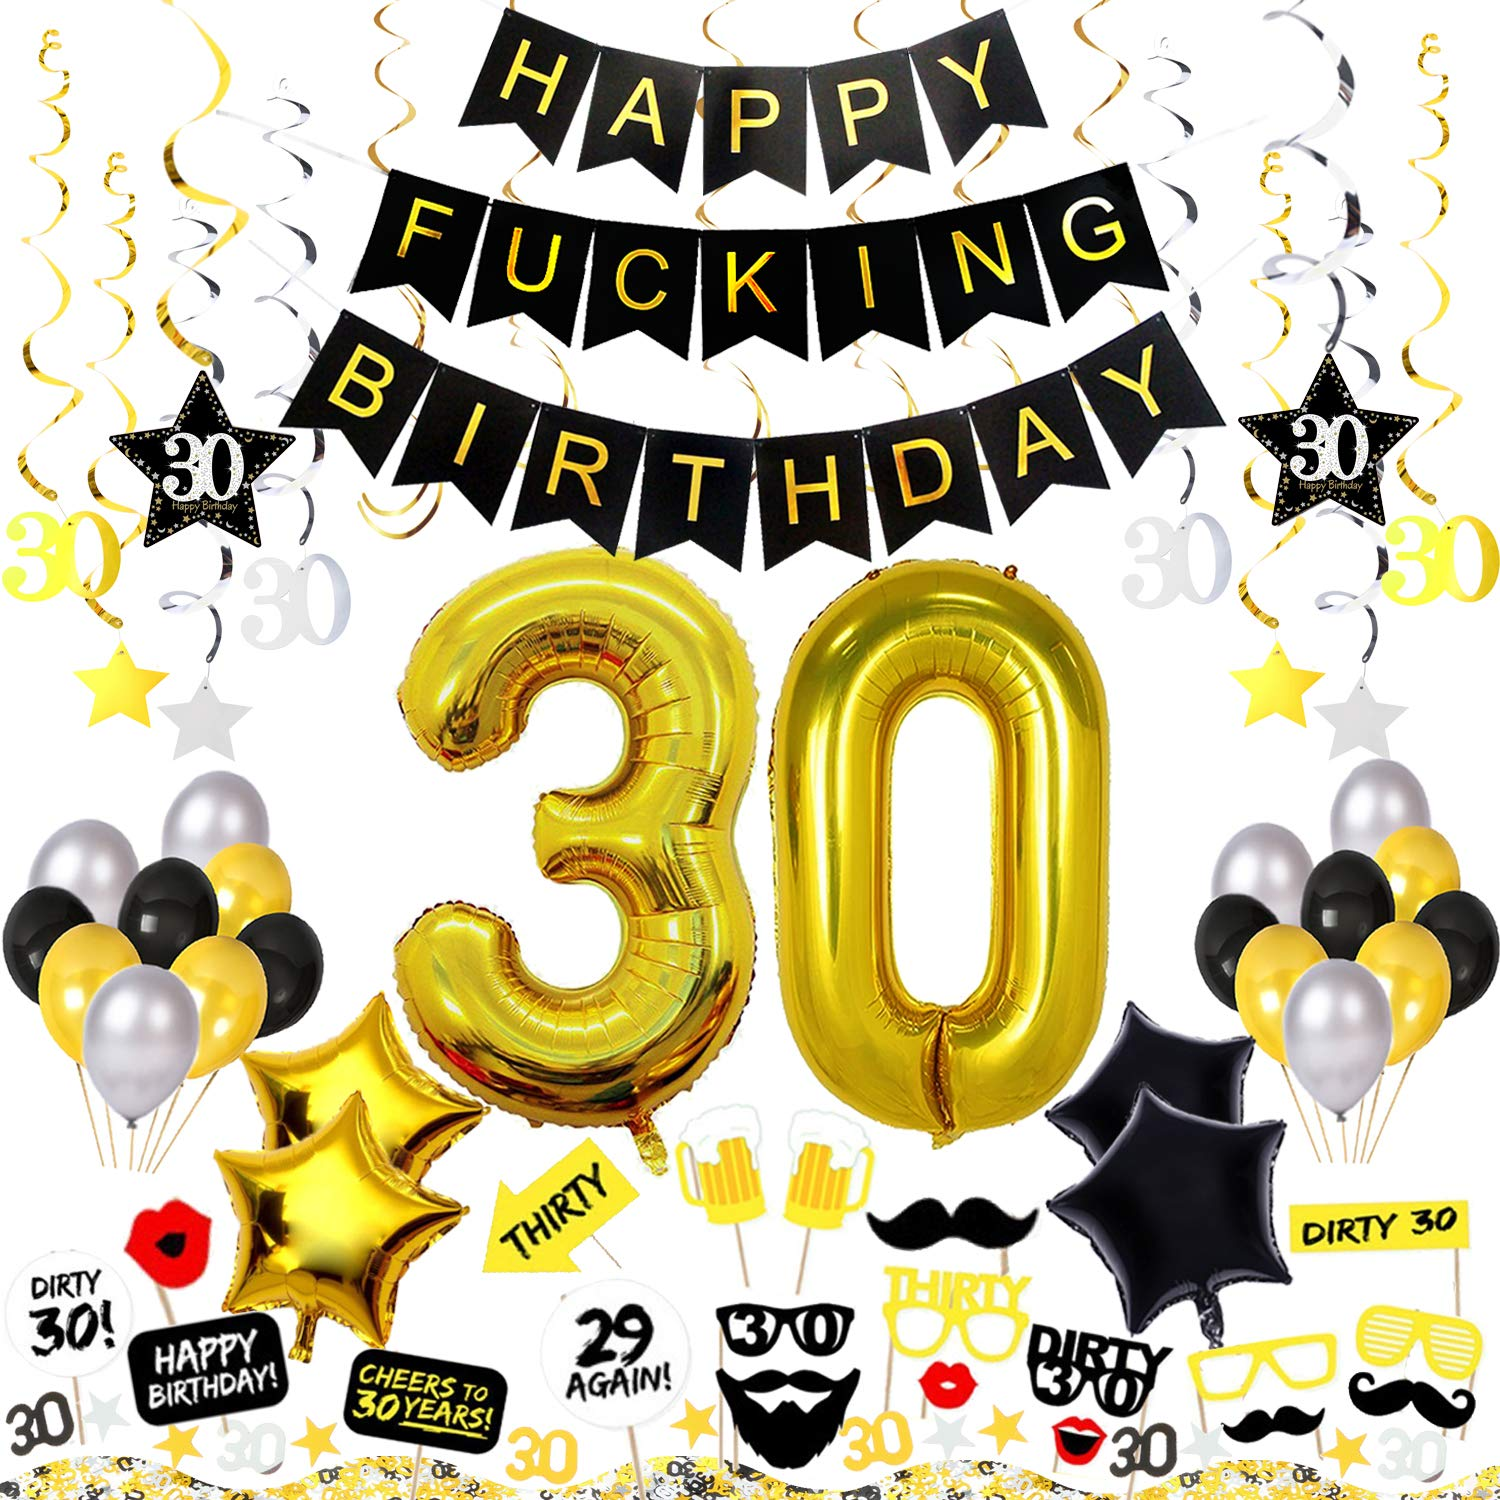 30th Birthday Decorations Kit 82 Pieces Happy Fcking Banner 40 Inch 30 Gold Balloons Sparkling Hanging Swirls Photo Booth Props Confetti For